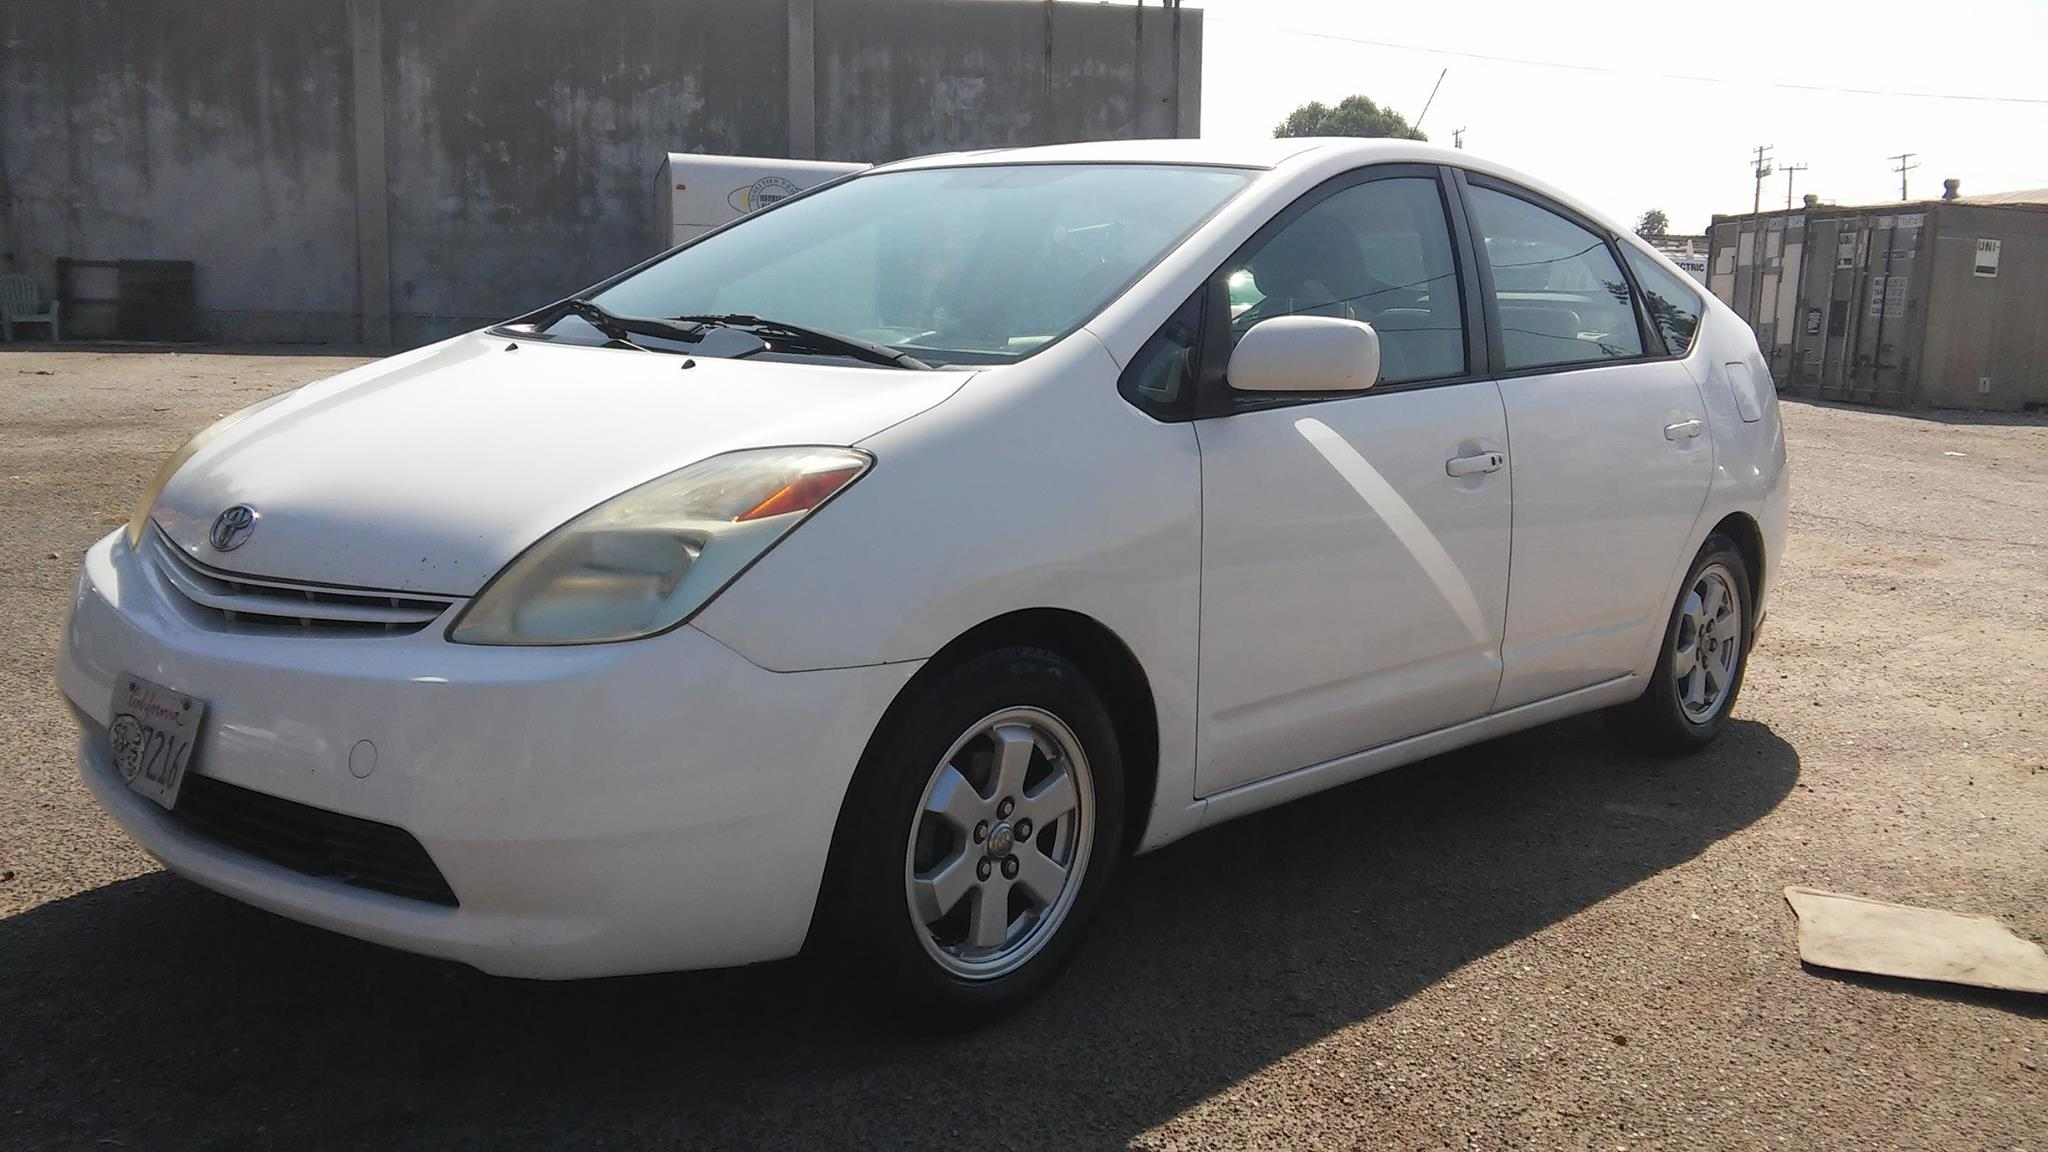 Another donation for charity -- white prius